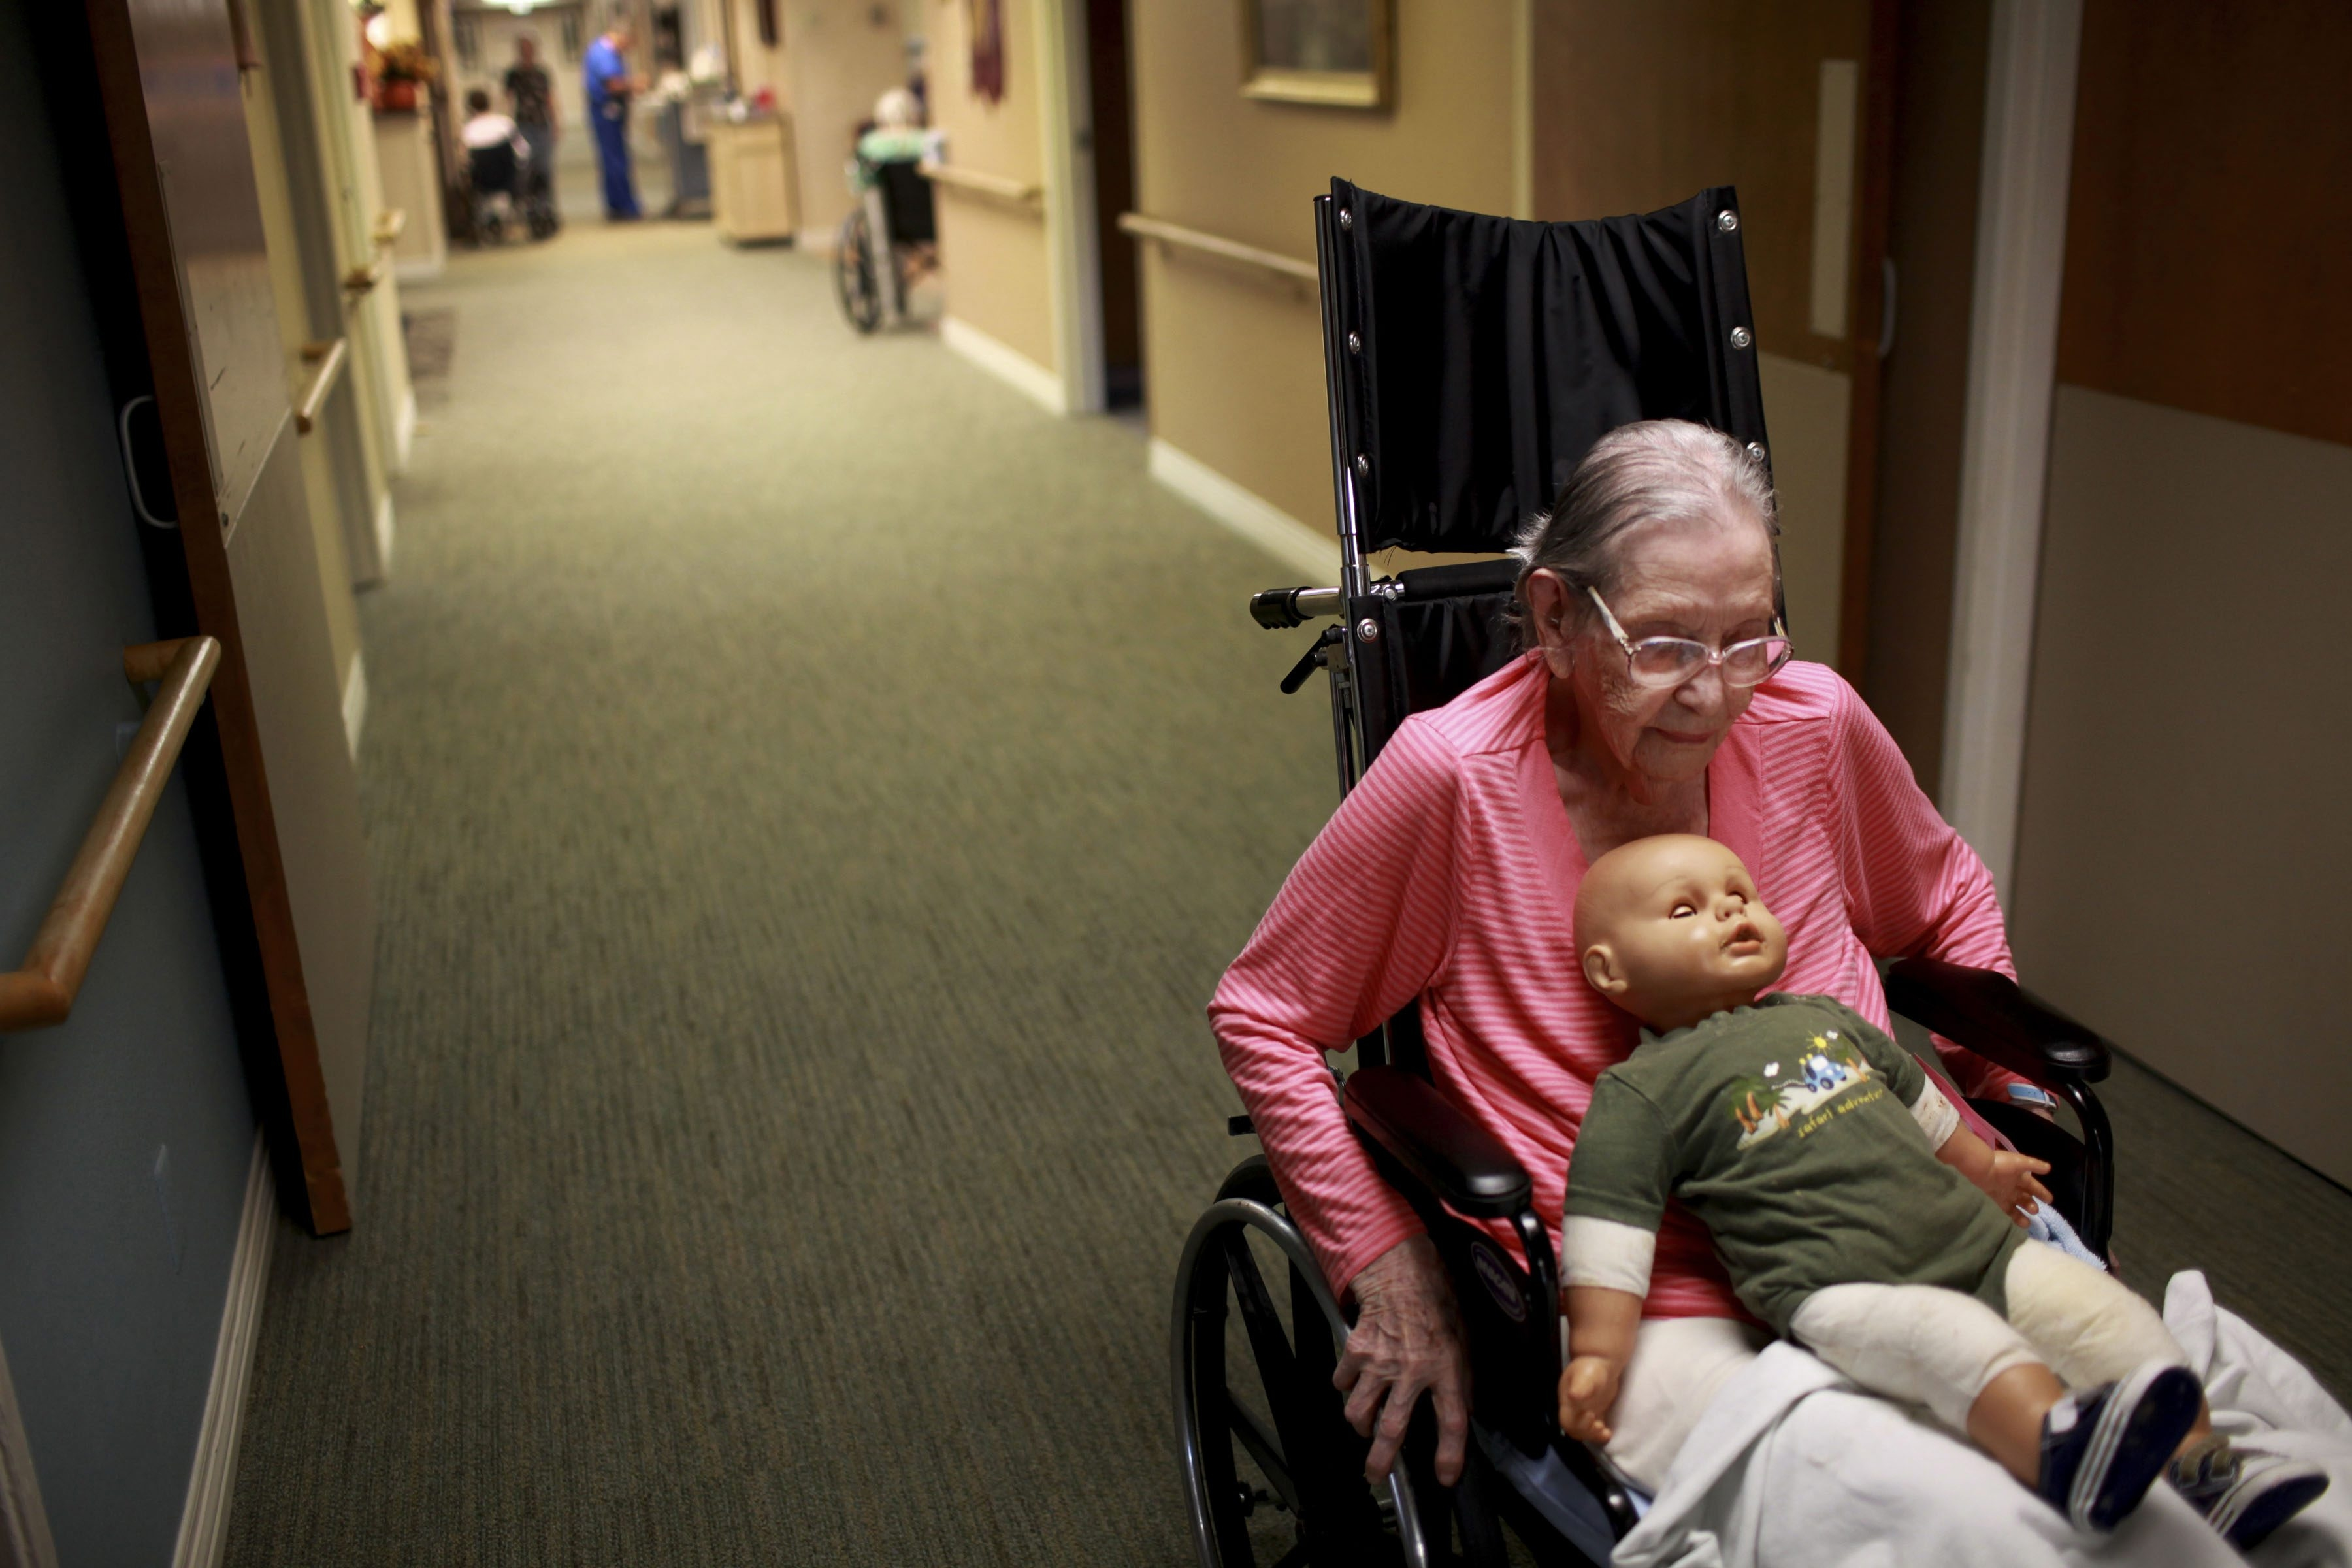 Margaret Nance sits with the doll that has been calming to her at the Beatitudes nursing home in Phoenix, Ariz. Research suggests creating positive experiences for Alzheimer's patients diminishes distress and allows comfort.